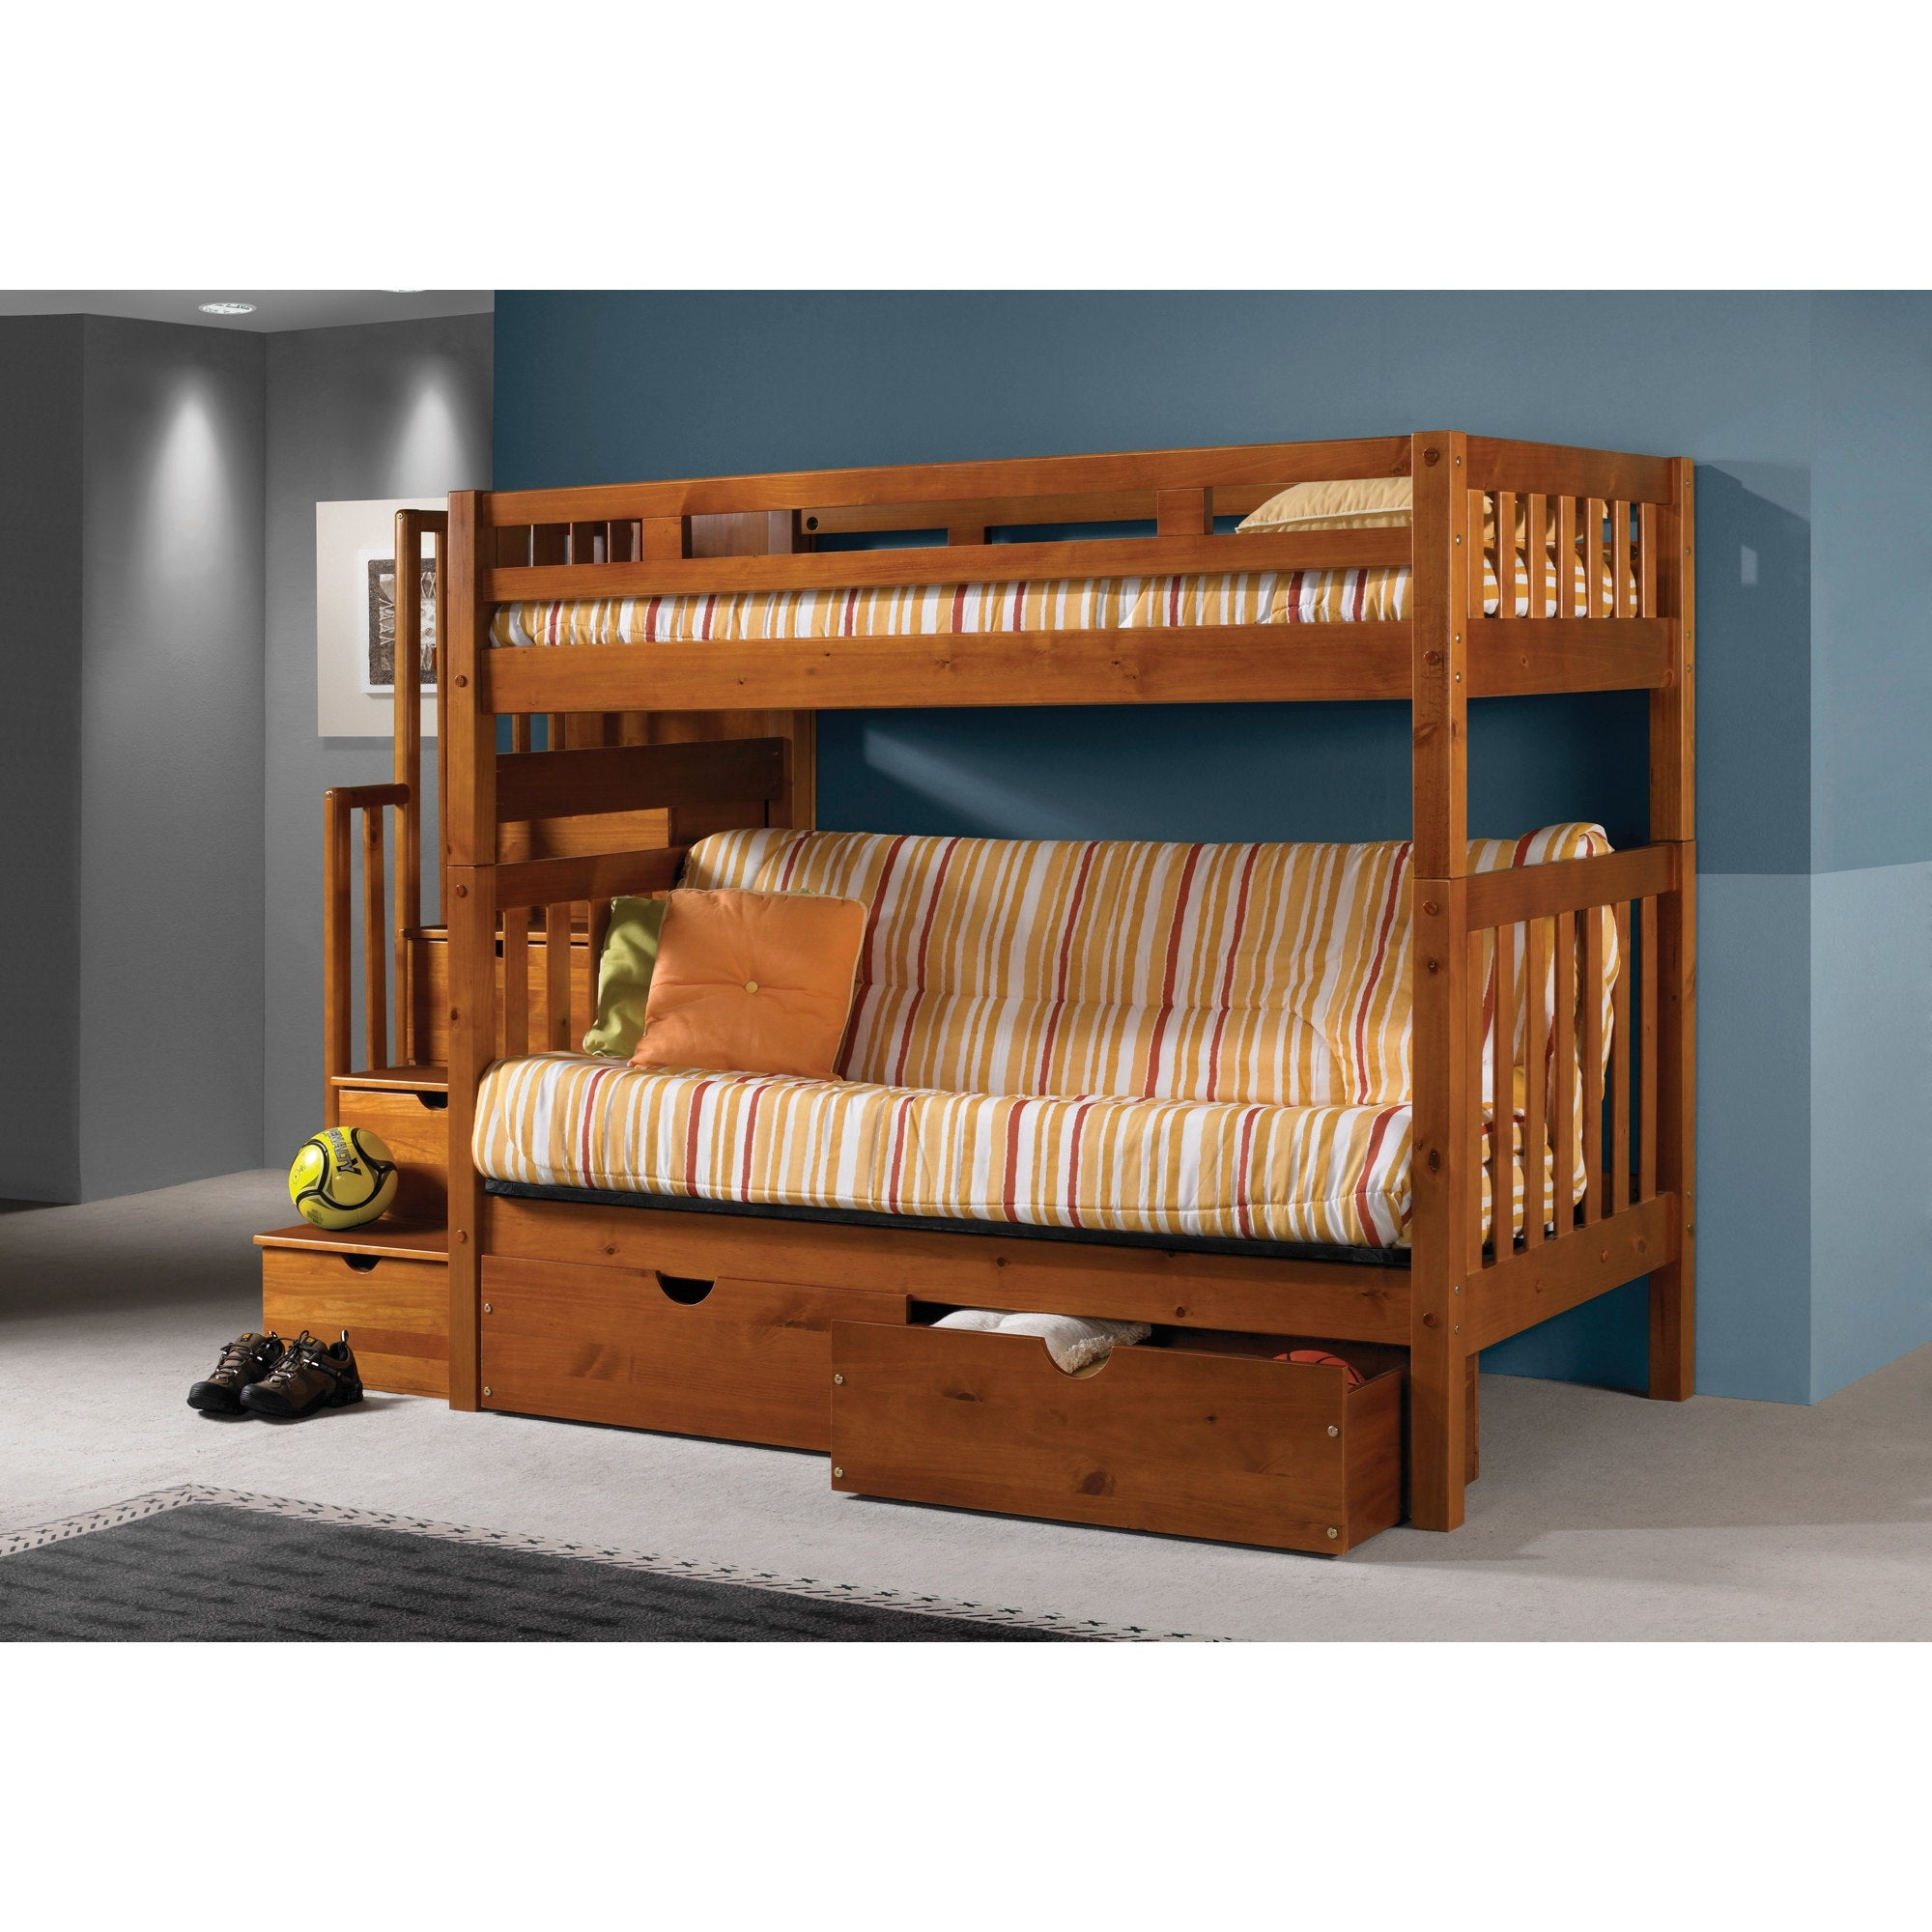 Donco Kids Tall Twin Over Futon Mission Stairway Honey Bunk Bed With Storage Drawers Overstock 12073846